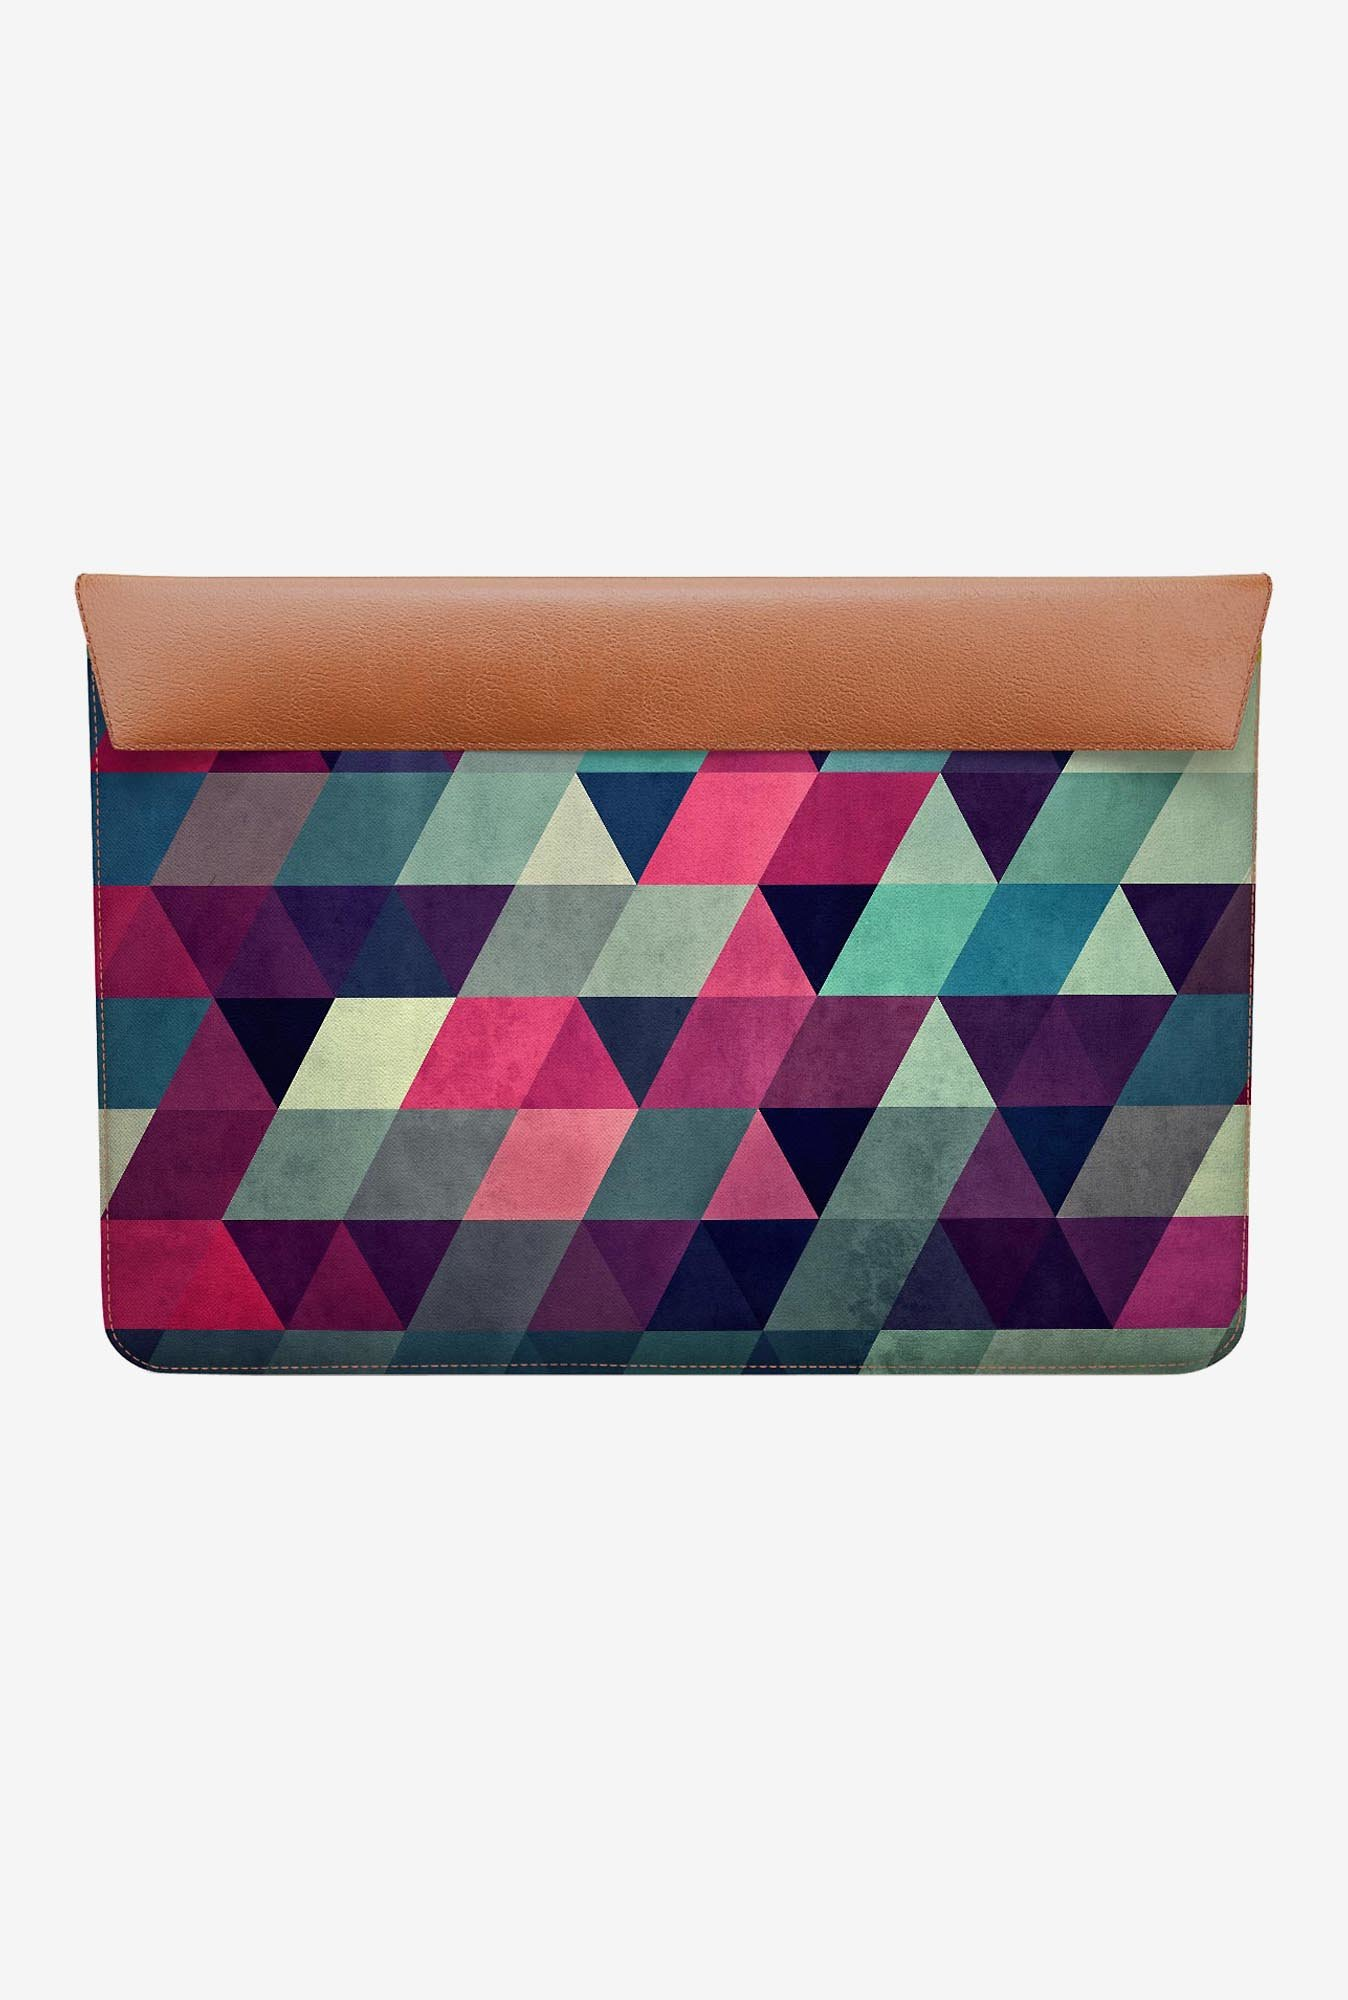 "DailyObjects Kyld Wyr Macbook Air 11"" Envelope Sleeve"